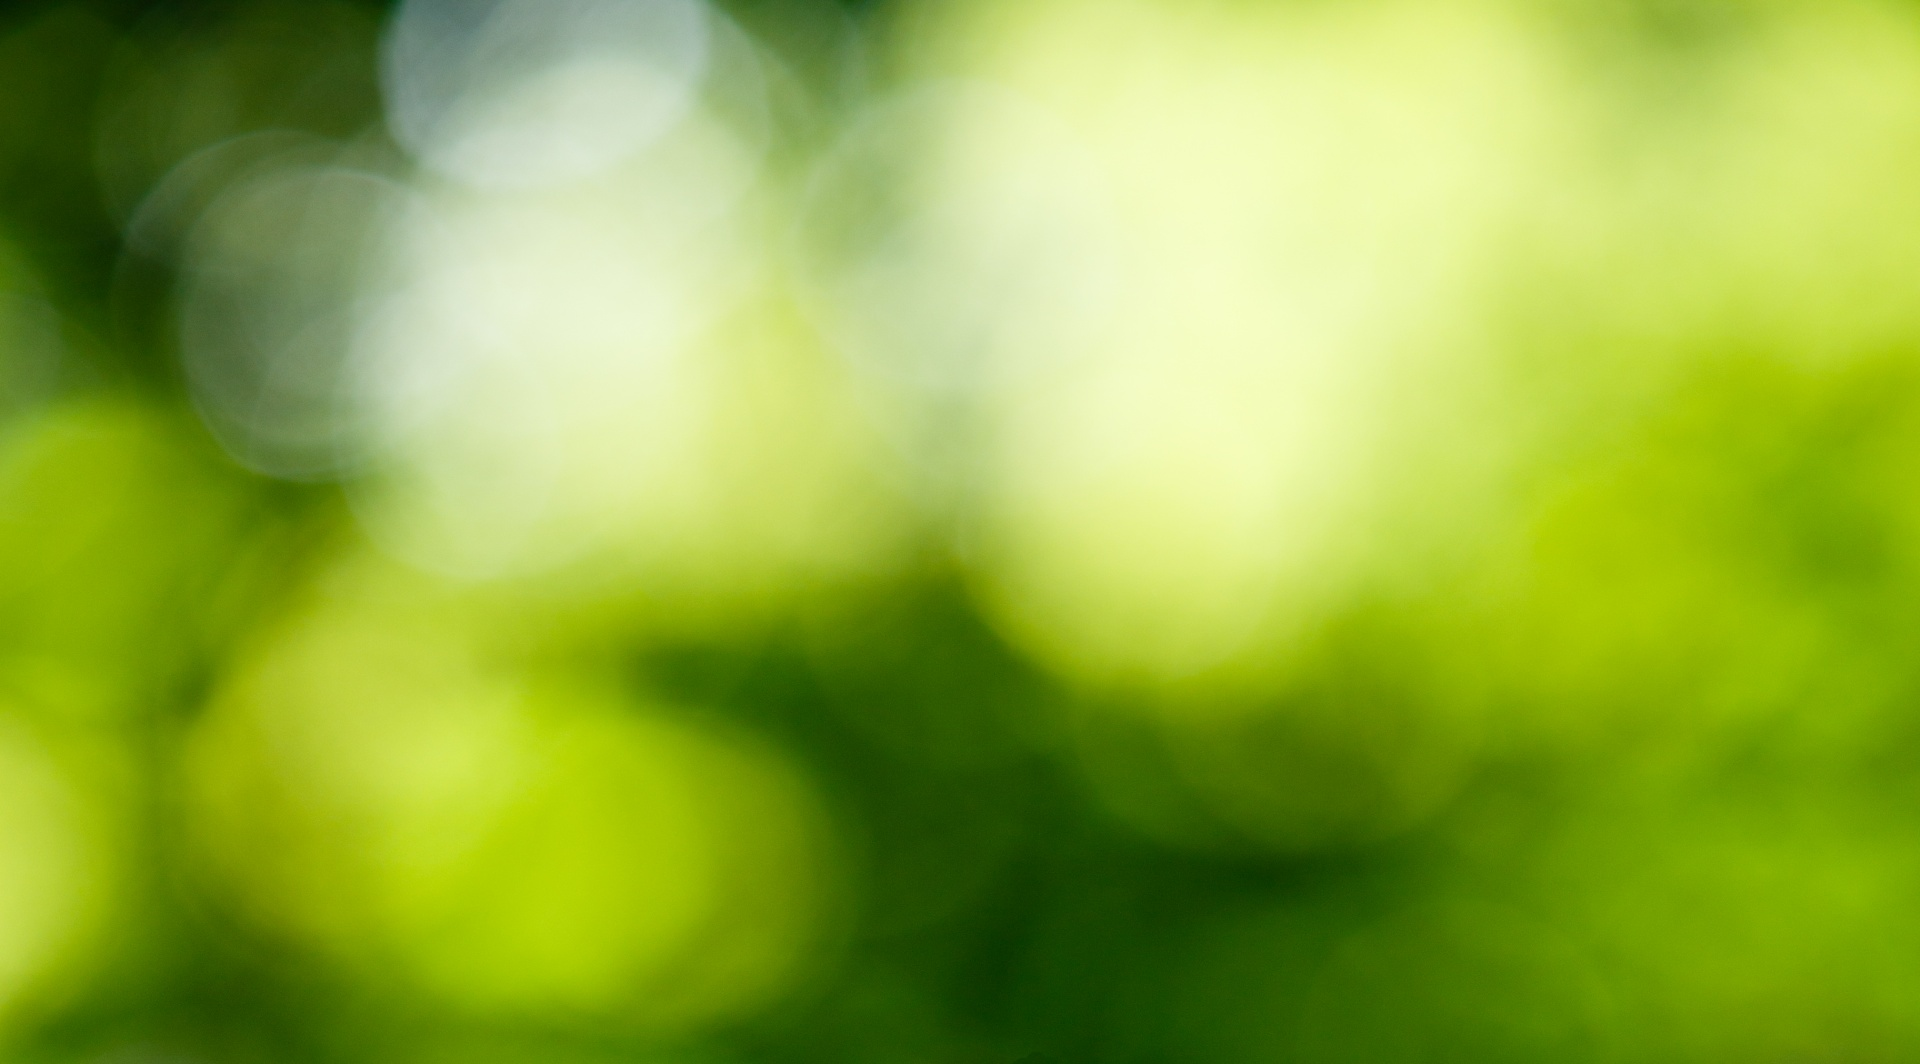 Bokeh Blurred Abstract Background Circles Free Photo